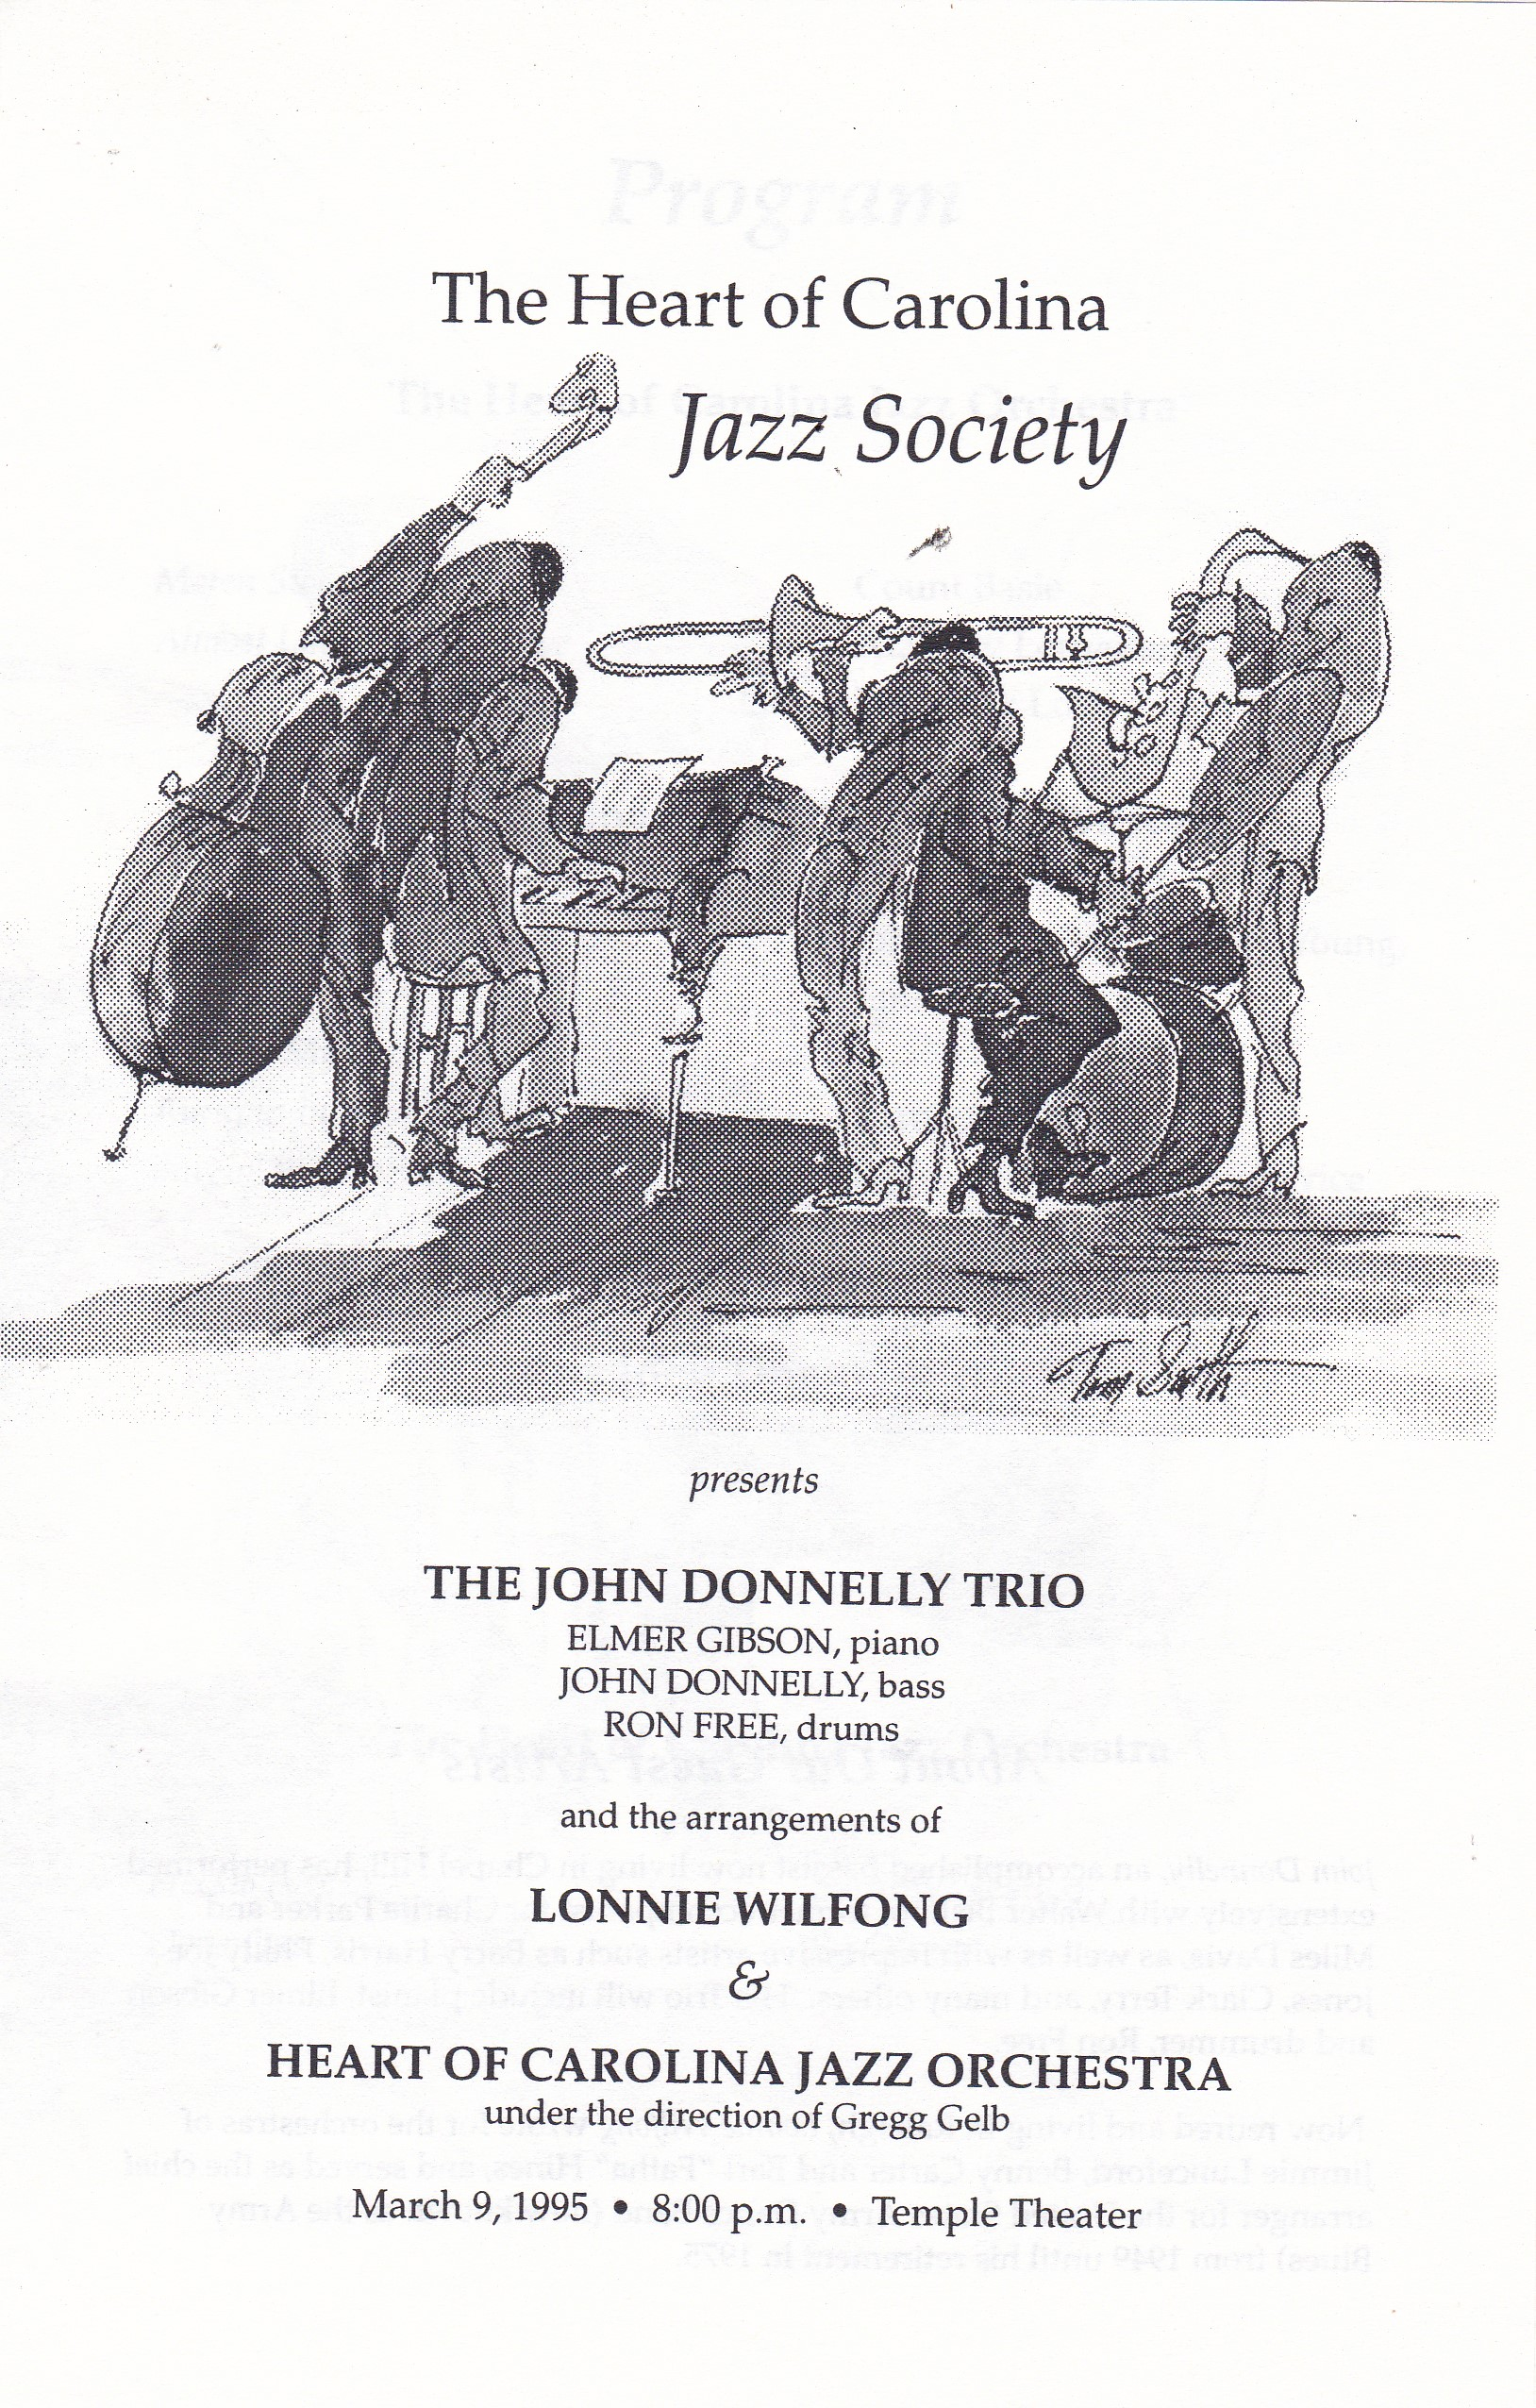 HOCJO-Guest-Artist-John-Donelly